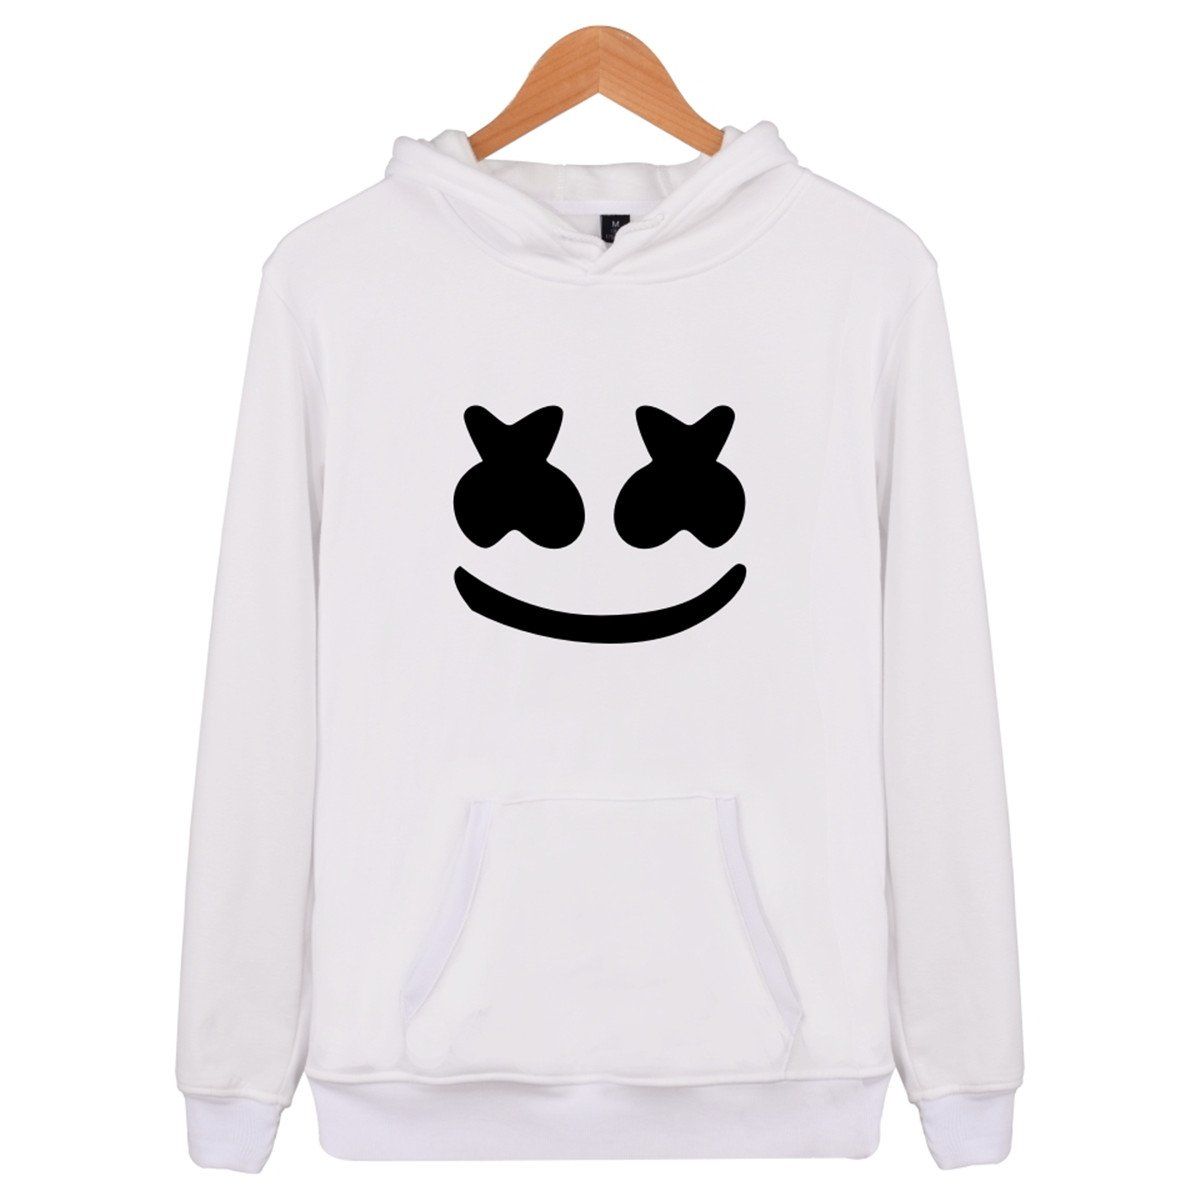 SIMYJOY Lovers Smiley Face Felpe con Cappuccio Suono Elettrico EDM Cool Hip Pop Pullover per Uomo Donna Teen